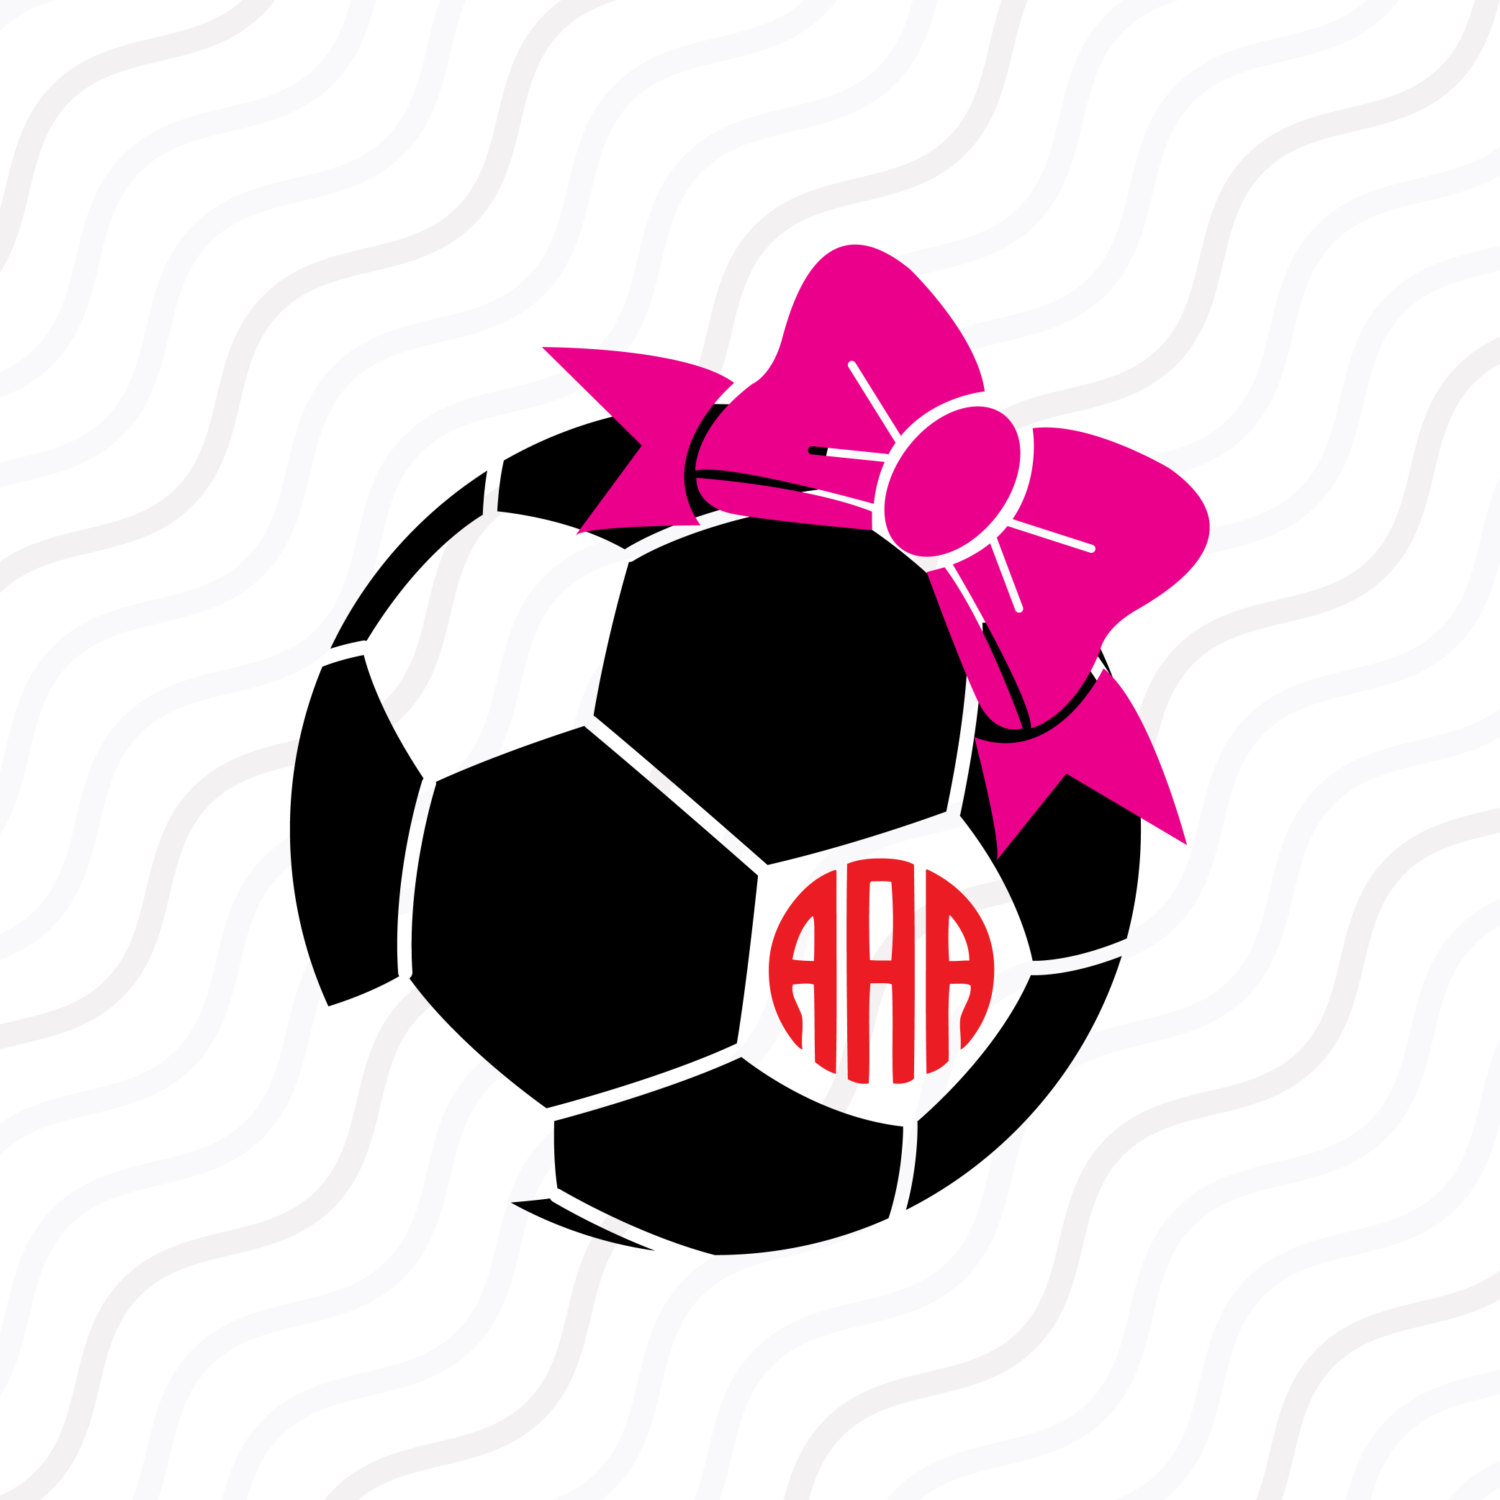 1500x1500 Soccer Ball Svg, Soccer Ball, Svg Files, Sports Svg, Silhouette